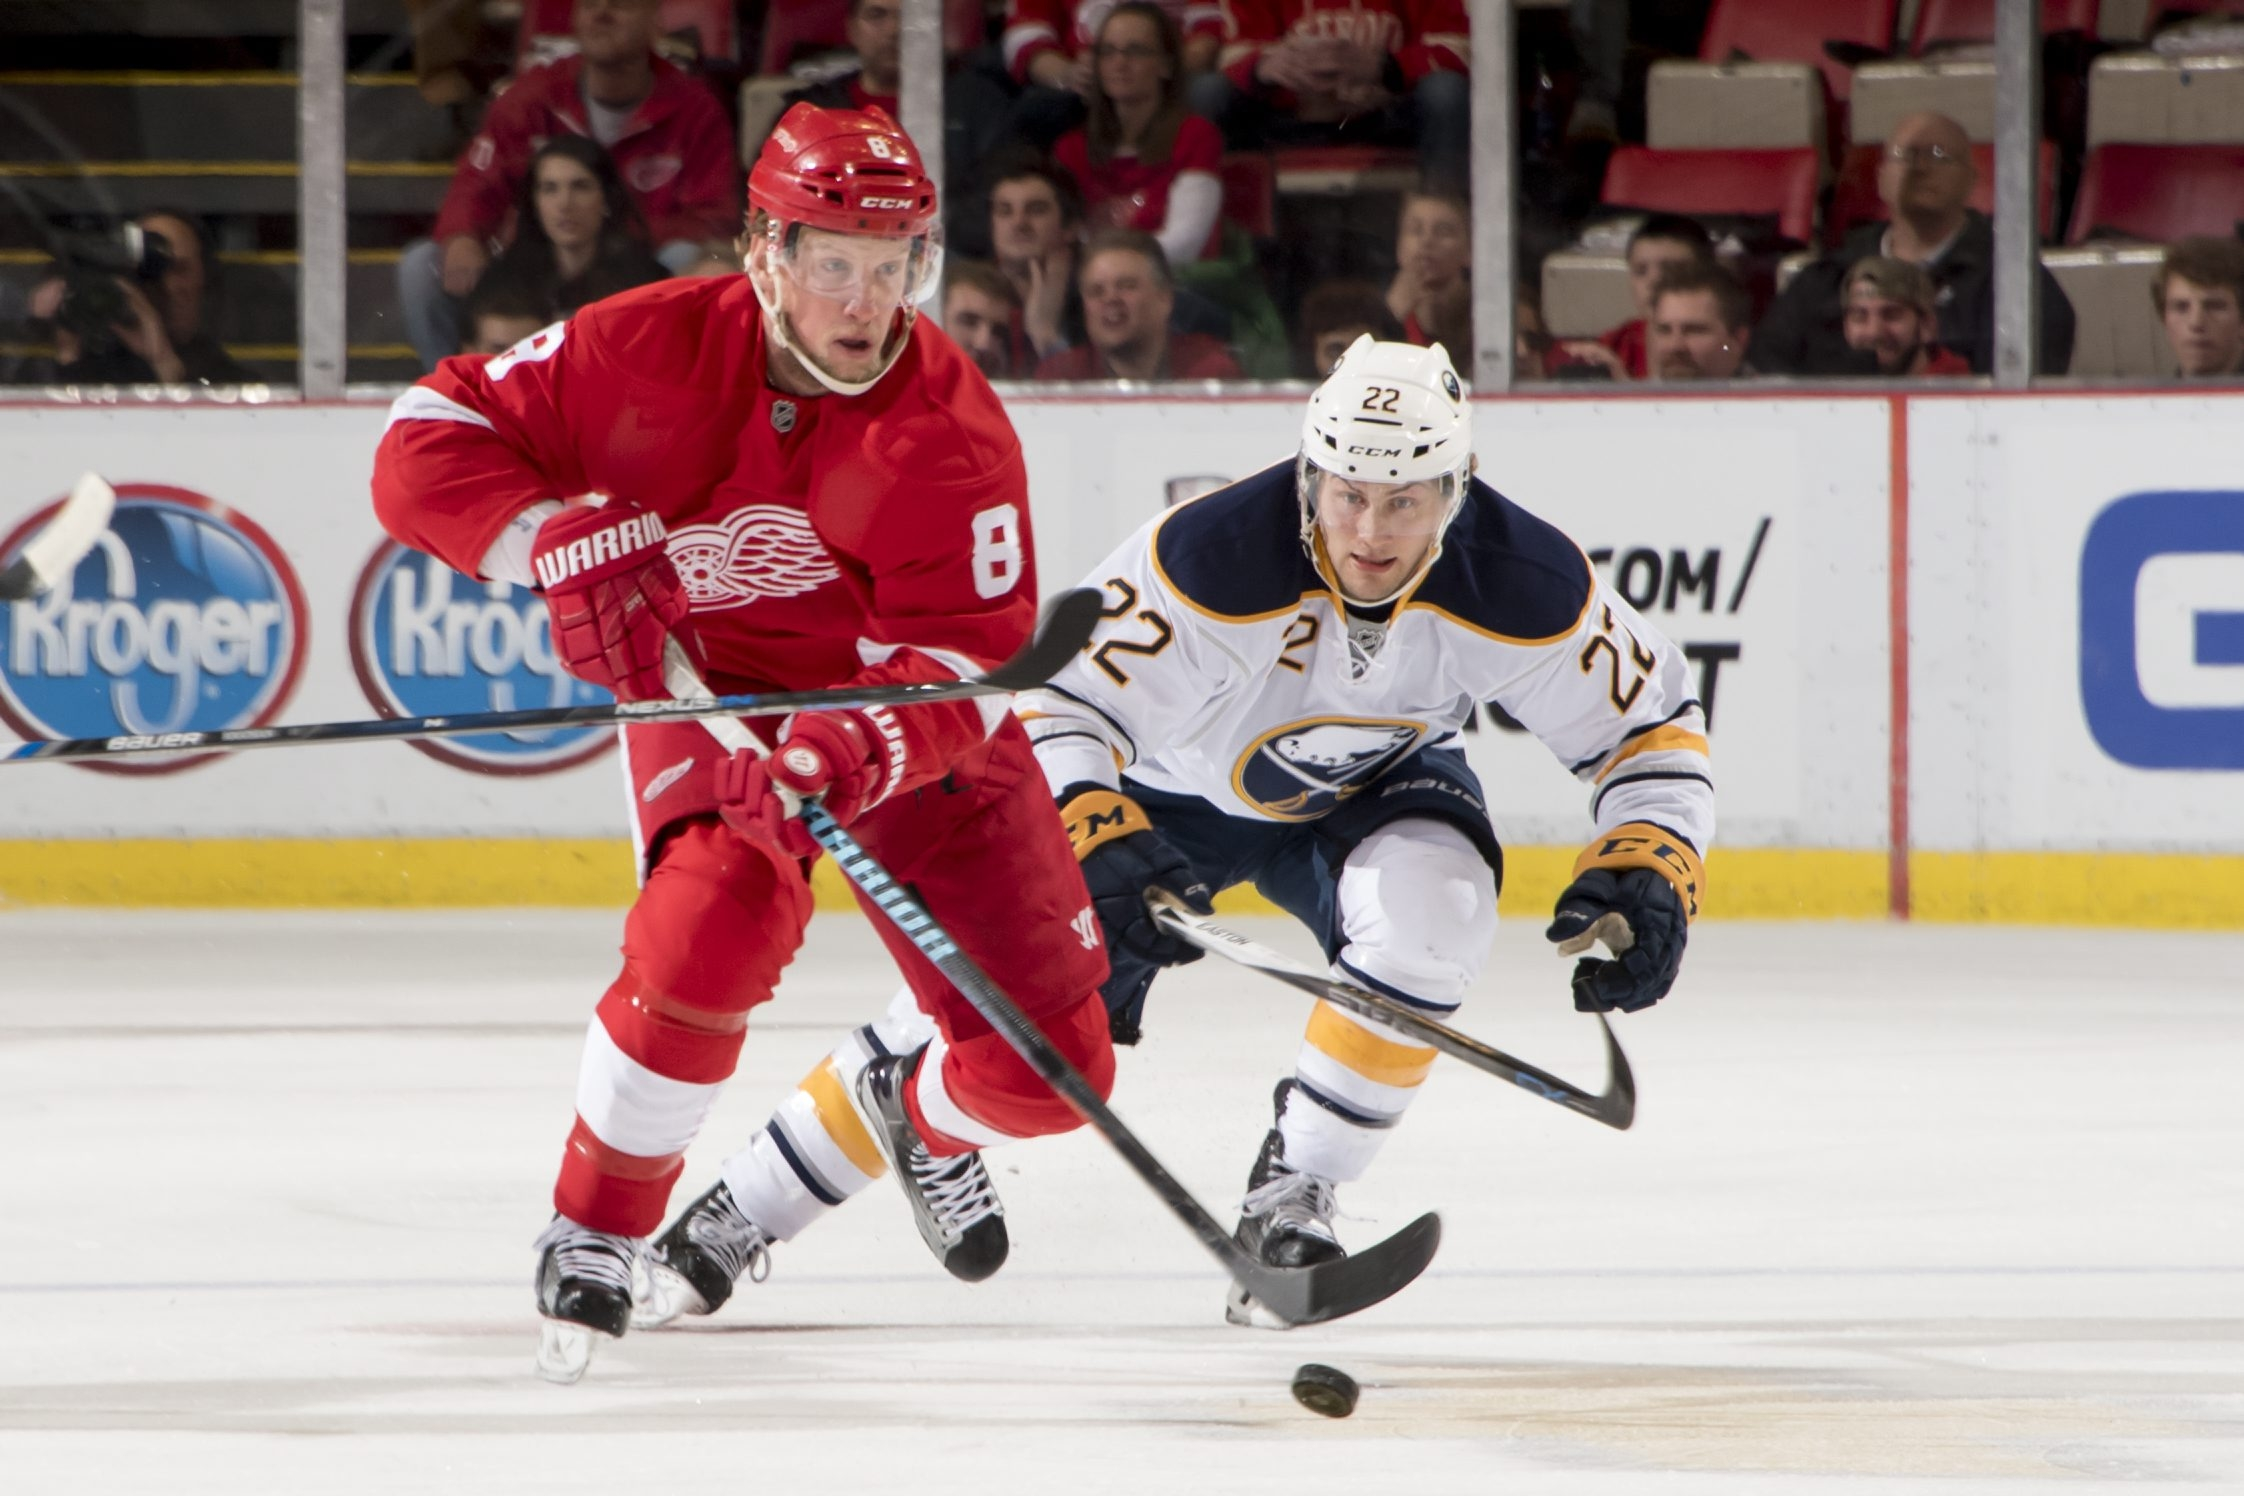 Detroit's Justin Abdelkader and Buffalo's Johan Larsson battle for the puck during the first period at Joe Louis Arena.